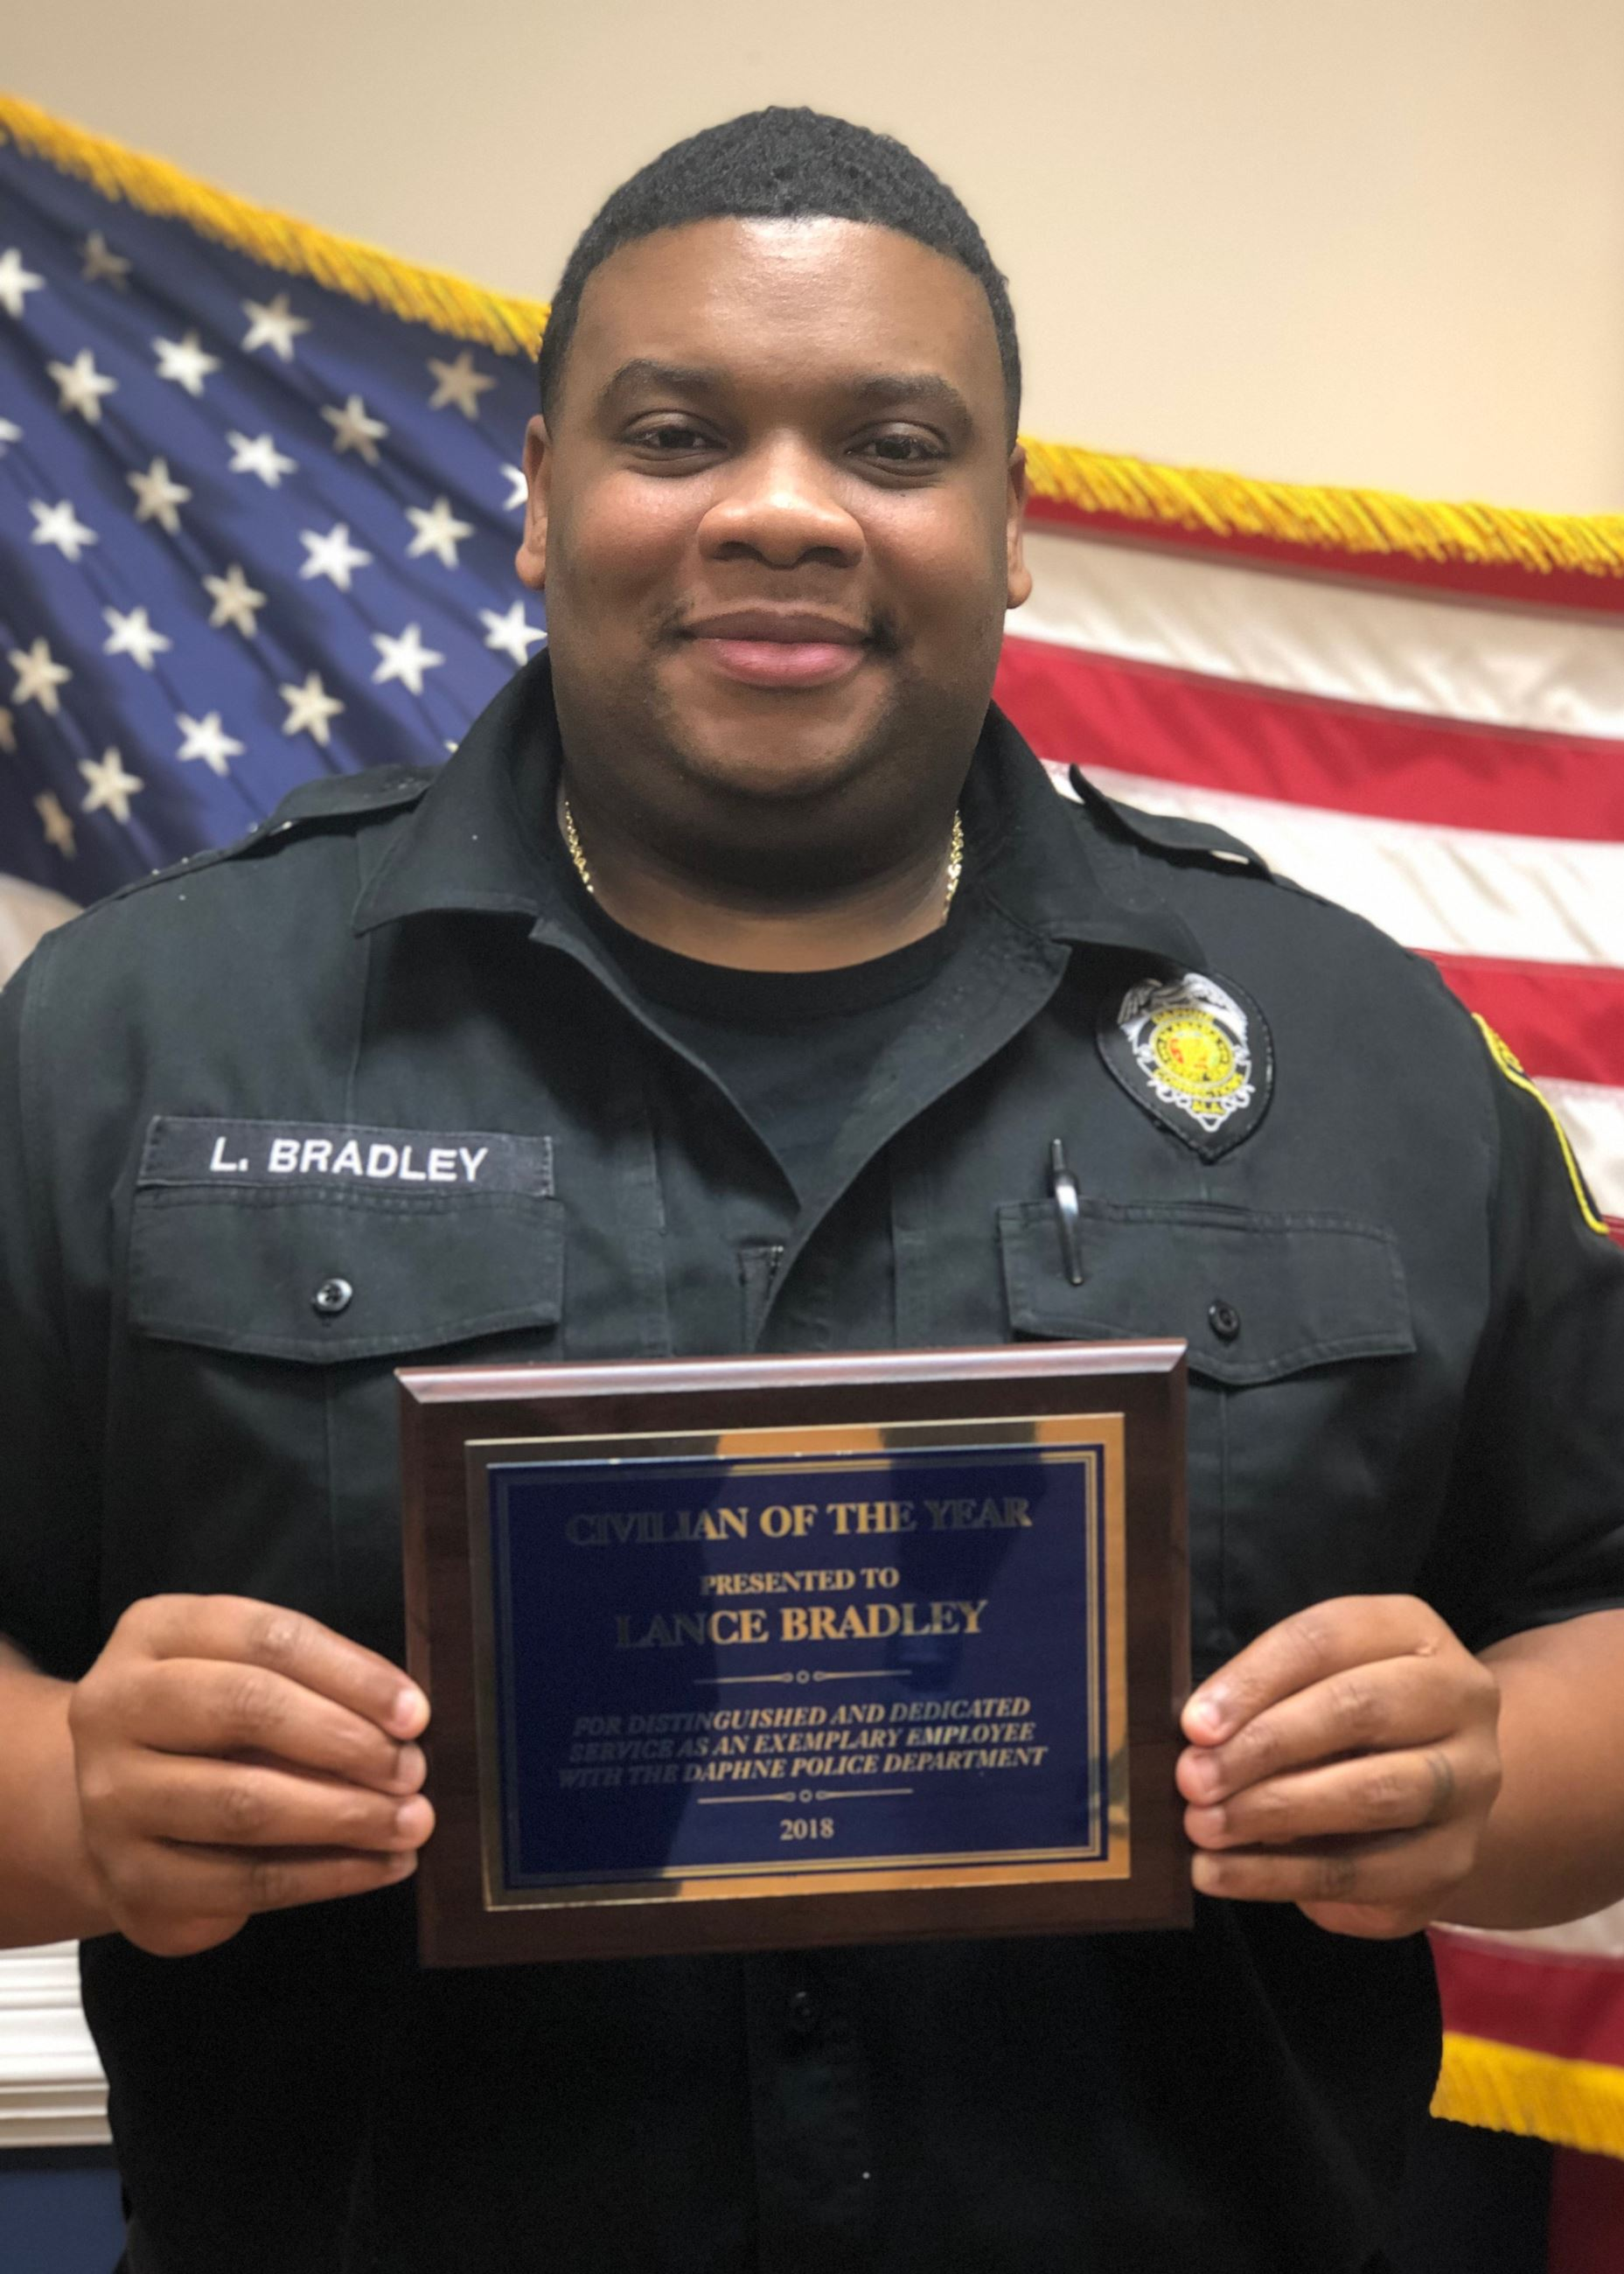 Lance Bradley - Civilian of the Year 2019